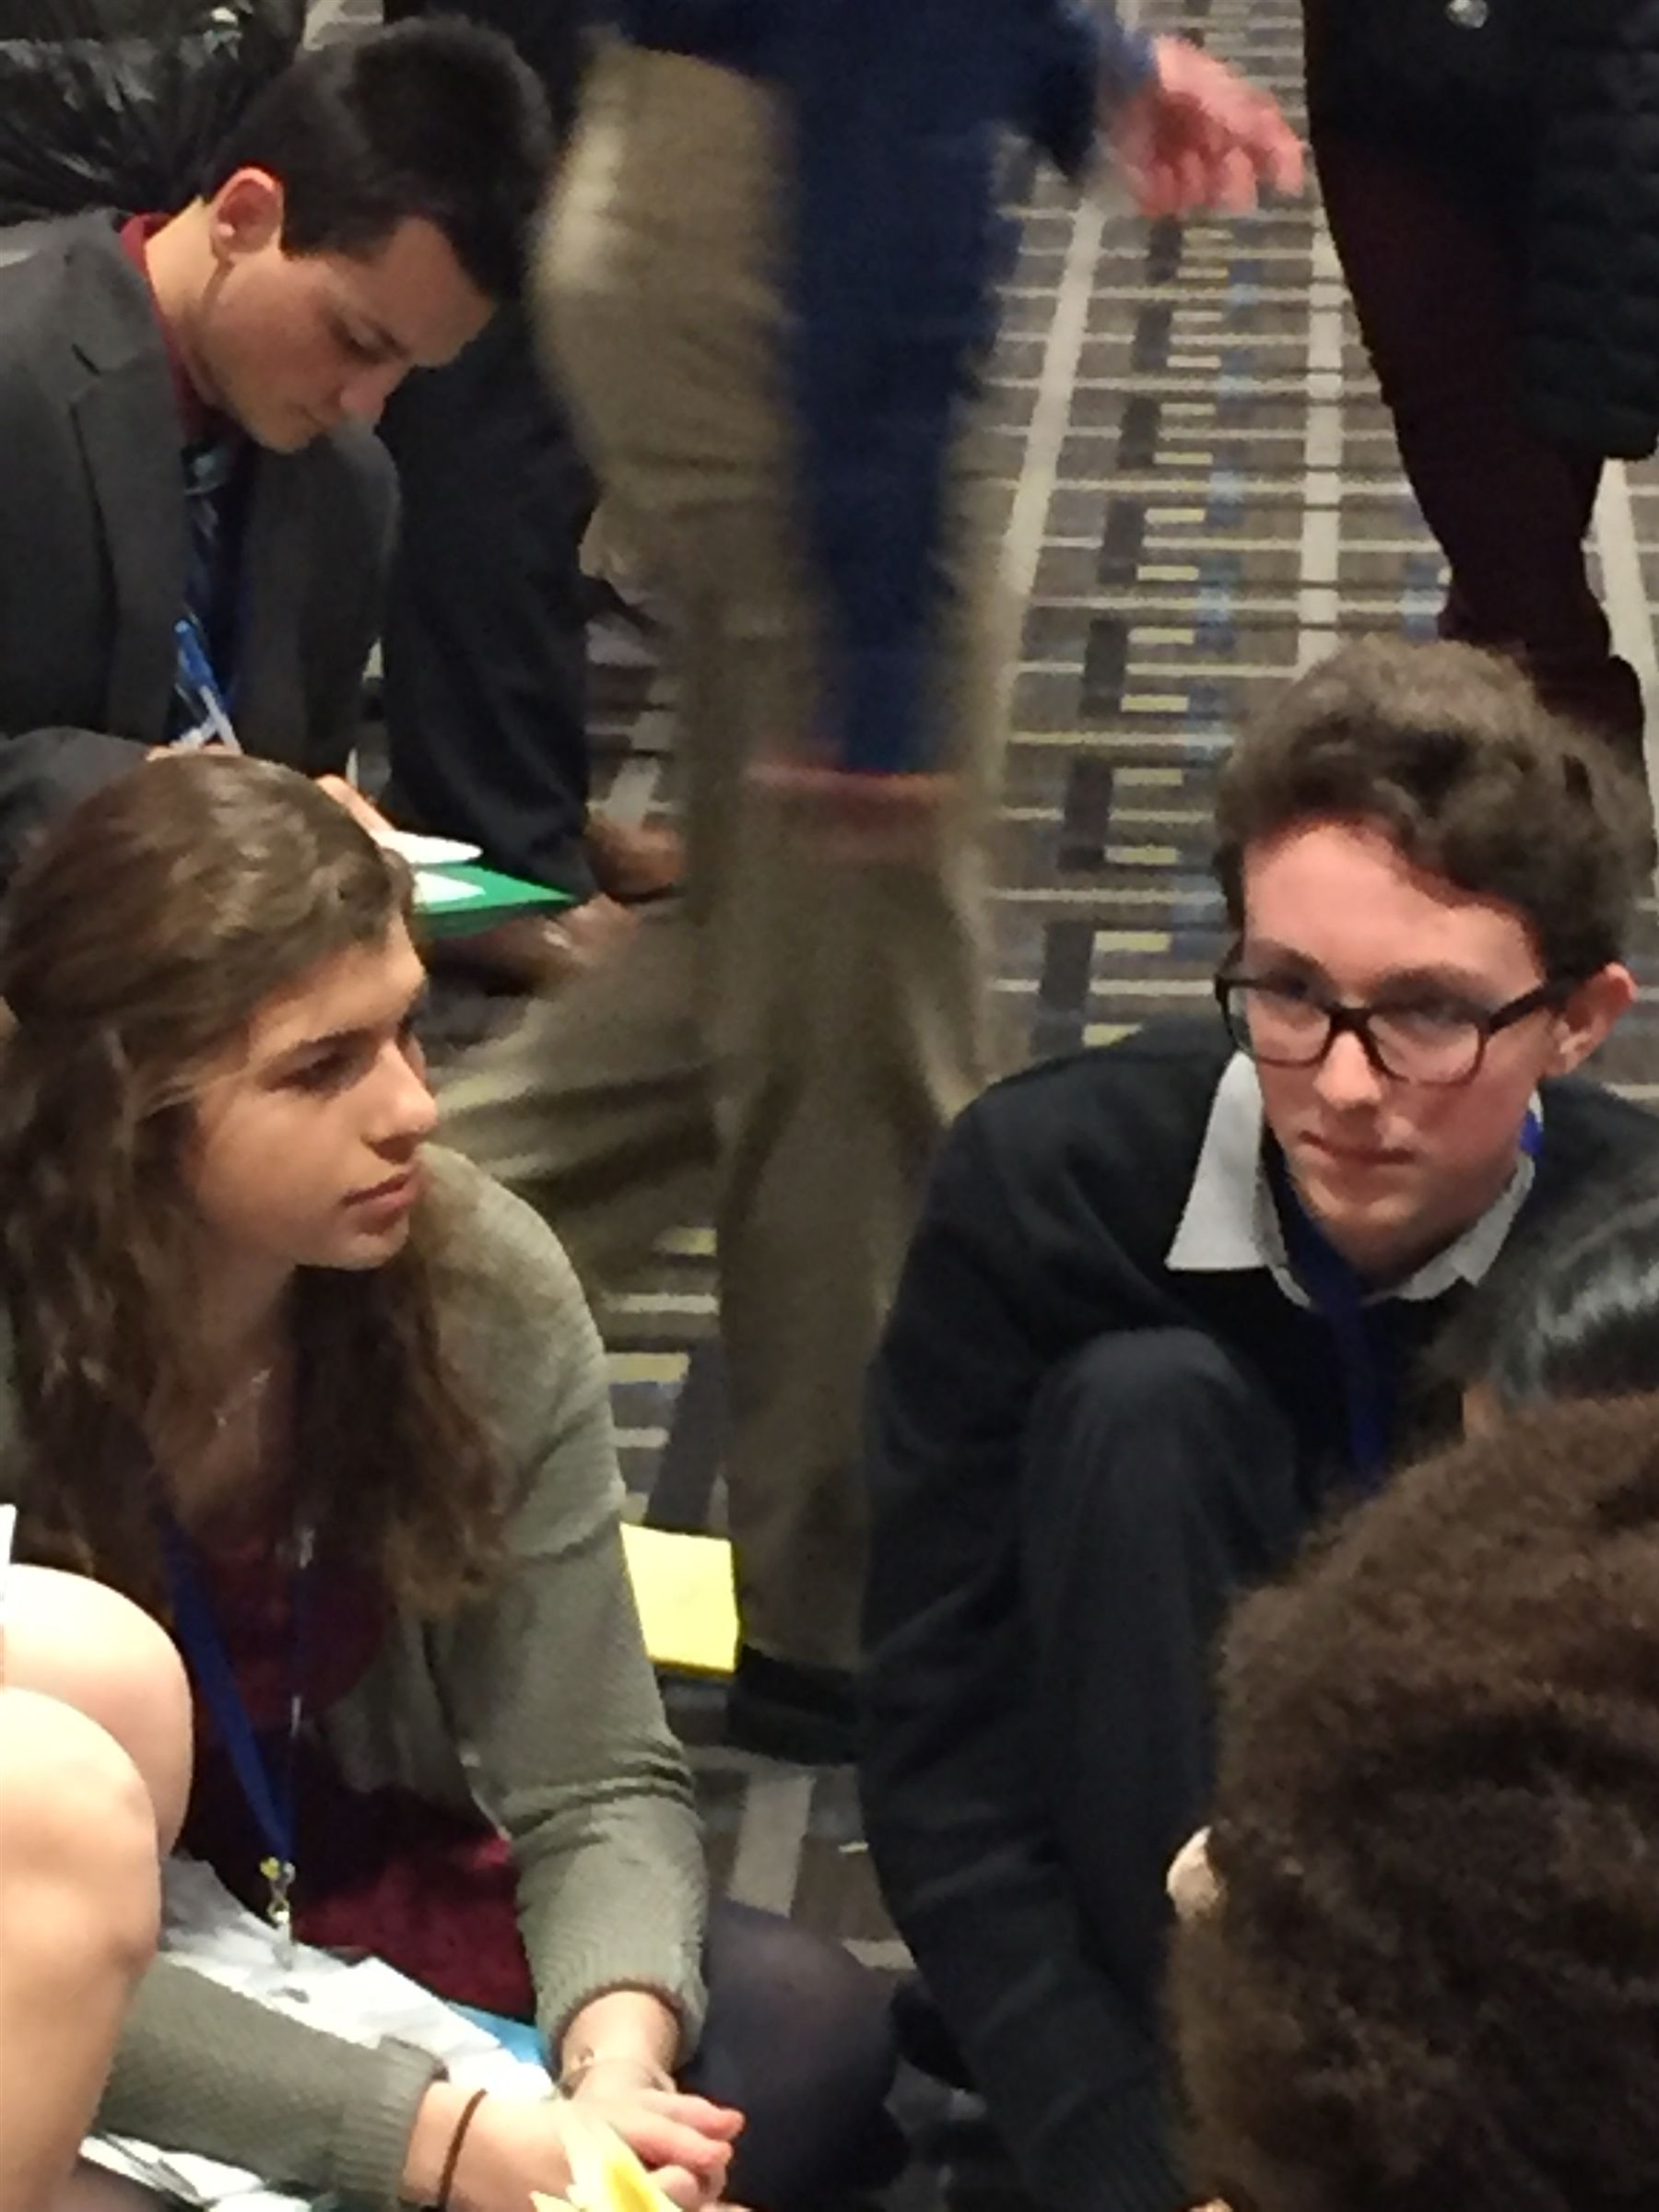 Kara Yanotta (L) and Ricky Suta (R) representing Spain in the Commission on the Status of Women at Philadelphia Model UN